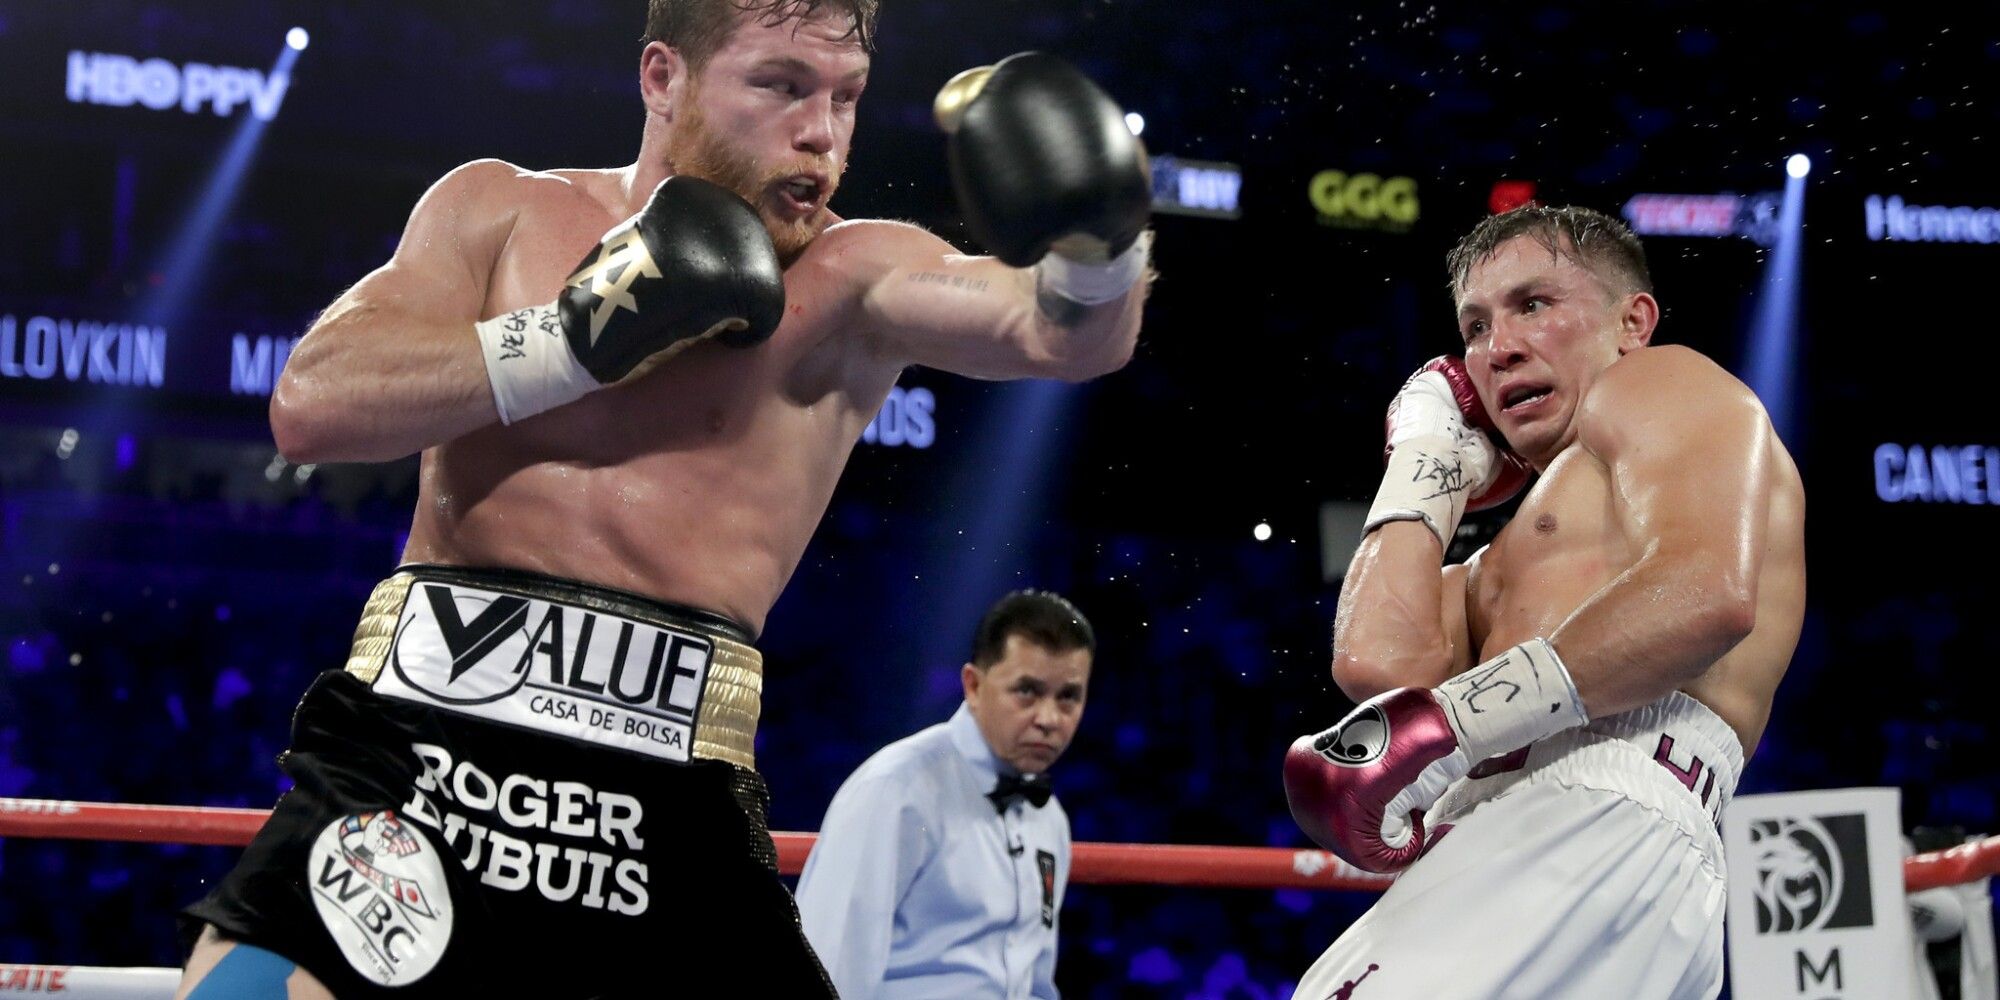 Canelo-GGG Rematch: Alvarez beats Golovkin by majority decision